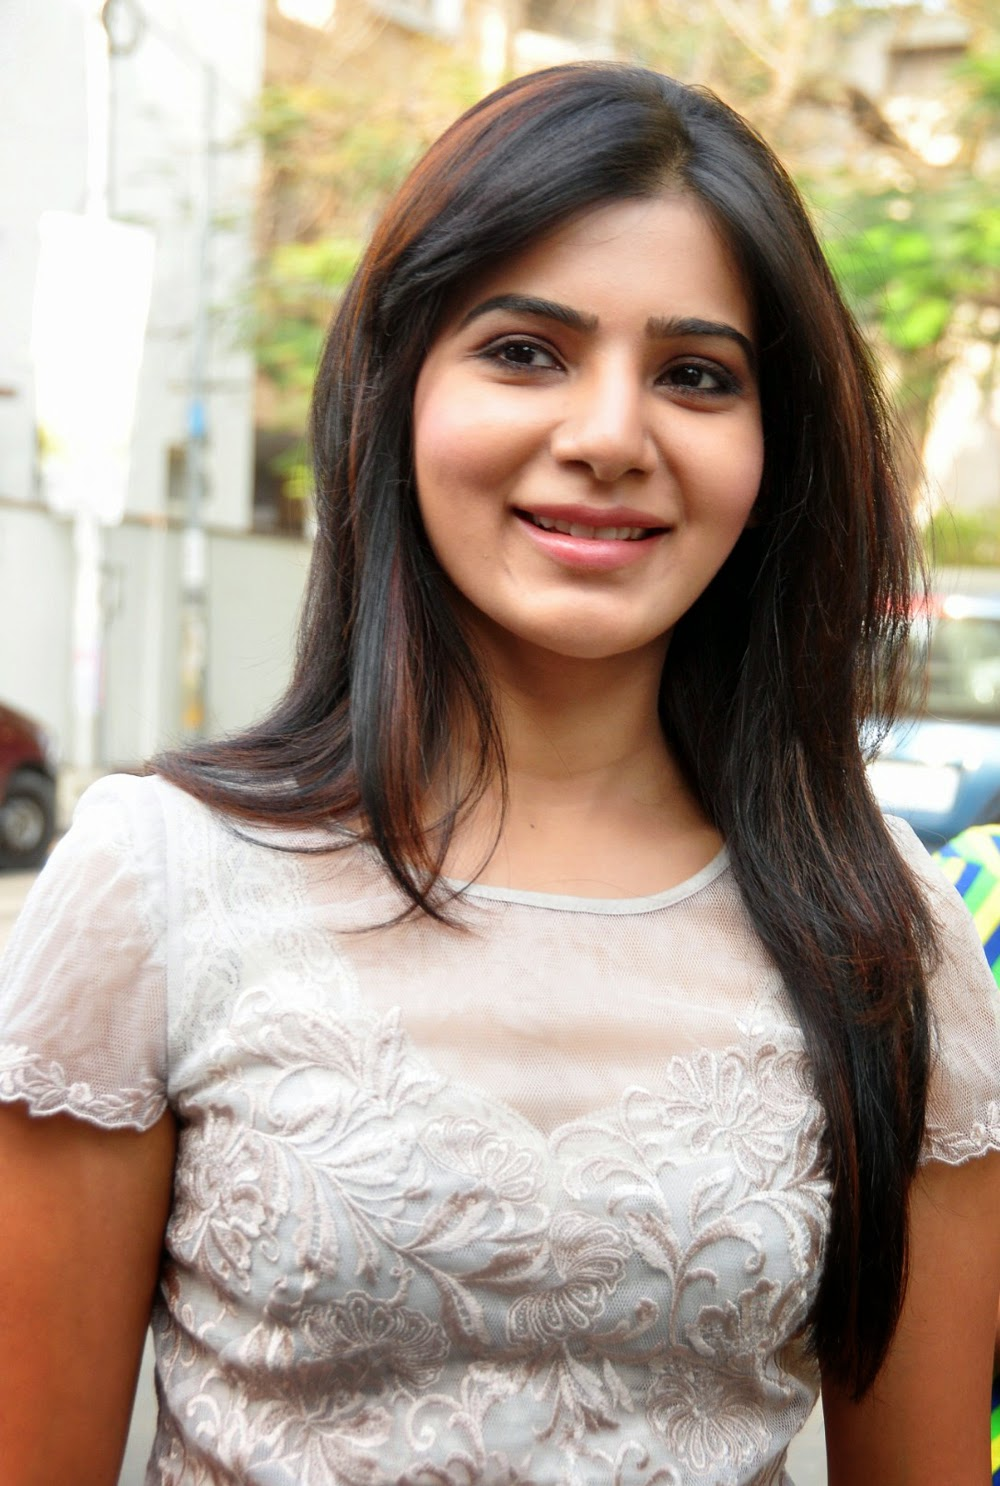 Glamour Queens: Samantha Hot HD wallpapers